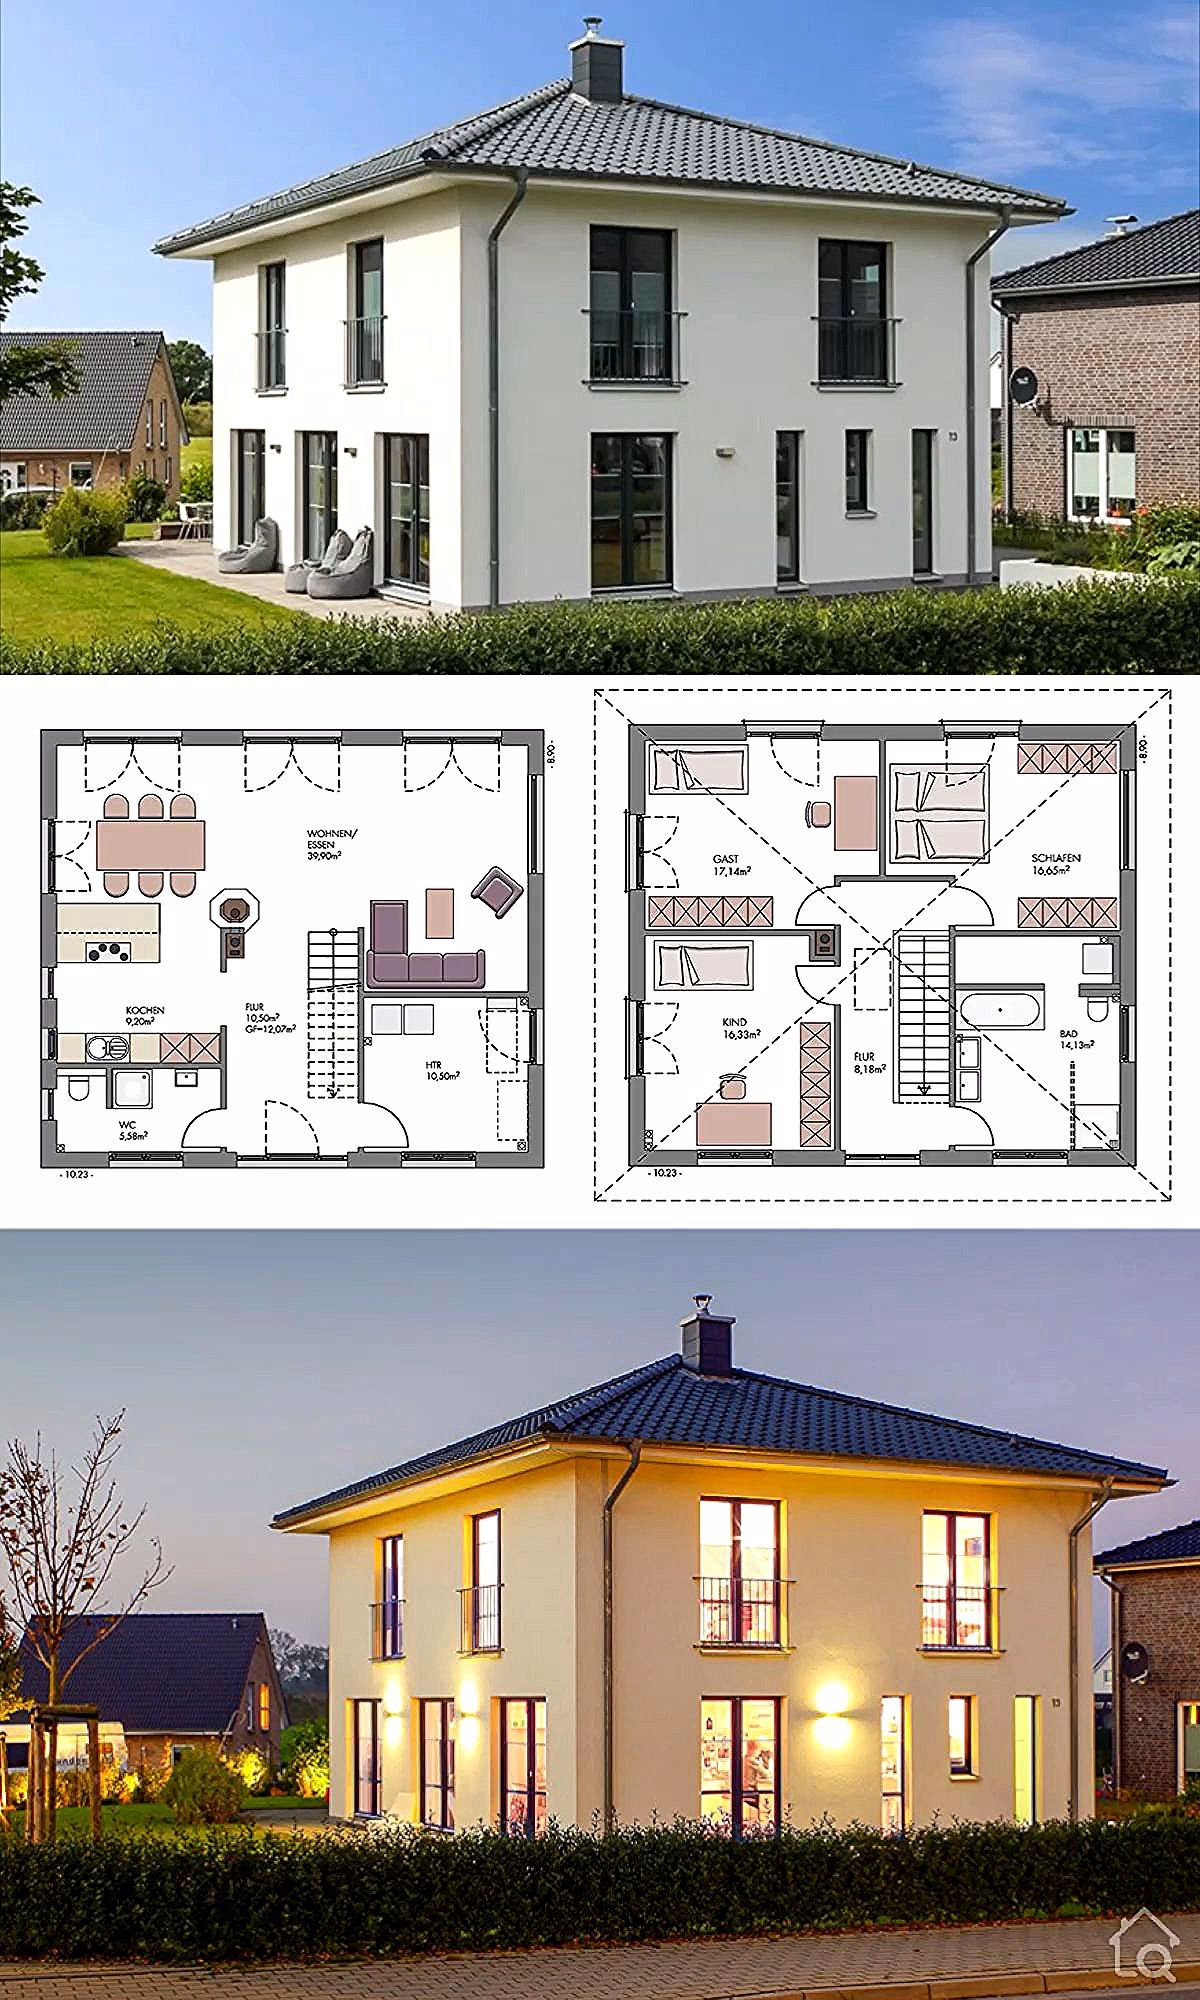 Modern European Style Architecture House Plan Villa 140 - Dream Home Ideas with Double Storey House Plans Blueprint - Open Floor Interior Design Home with Kitchen and Living Room Bathroom Bedroom Garage and Garden Exterior - Rendering Photography and Layout Inspiration - HausbauDirekt.de #home #house #houseplan #houseplans #villa #luxury  #homesweethome #dreamhome #newhome #newhouse #homedesign #houseideas #housegoals #architecture #architect #arquitectura #hausbaudirekt